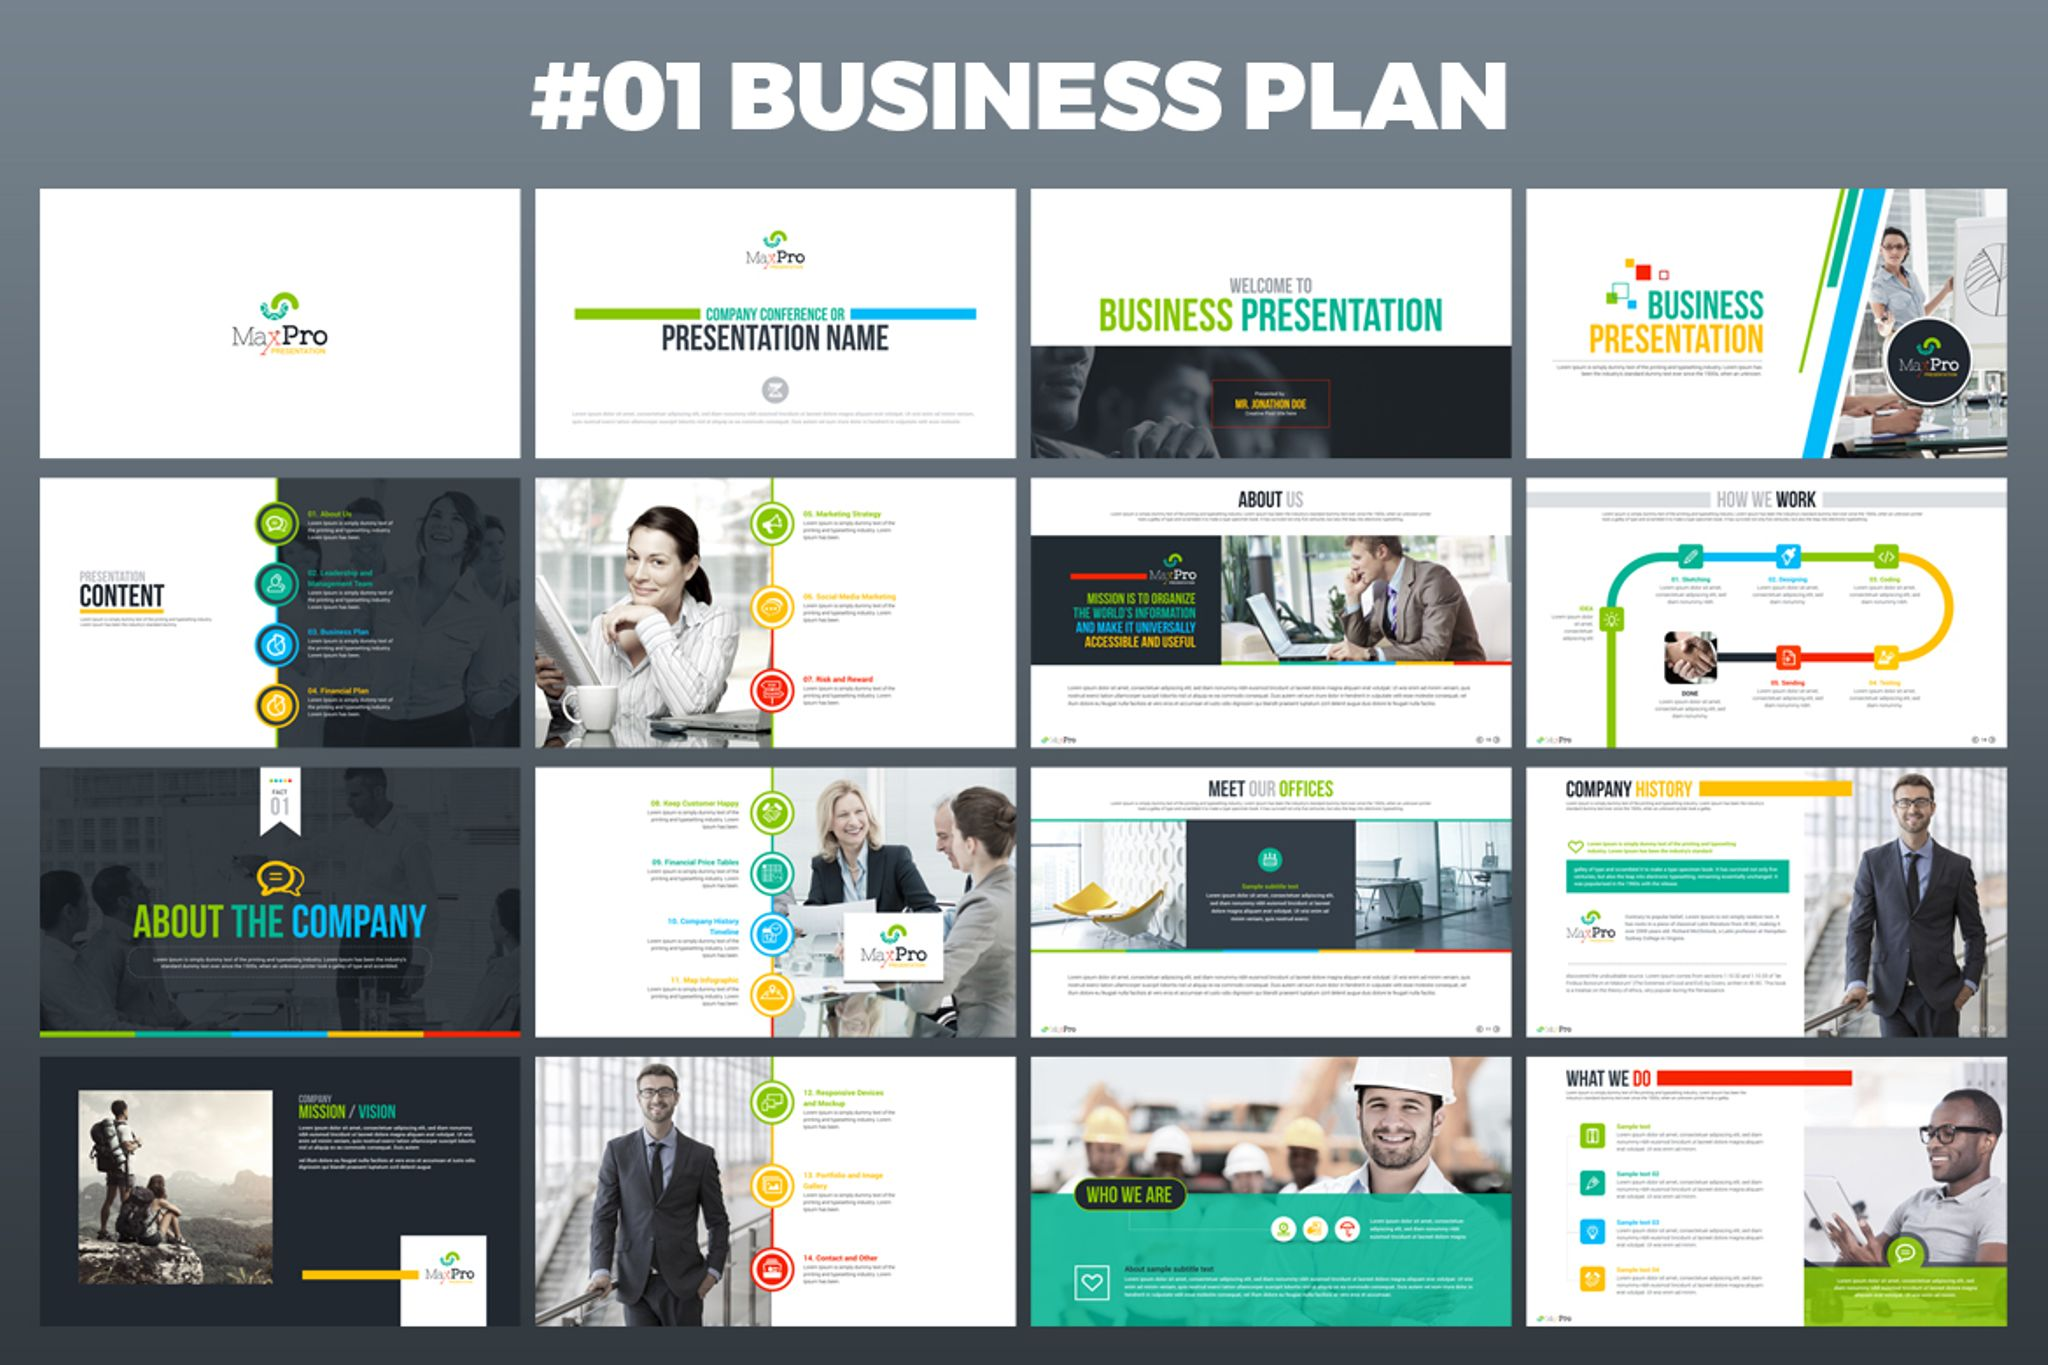 Maxpro business plan powerpoint template 66751 maxpro business plan powerpoint template big screenshot toneelgroepblik